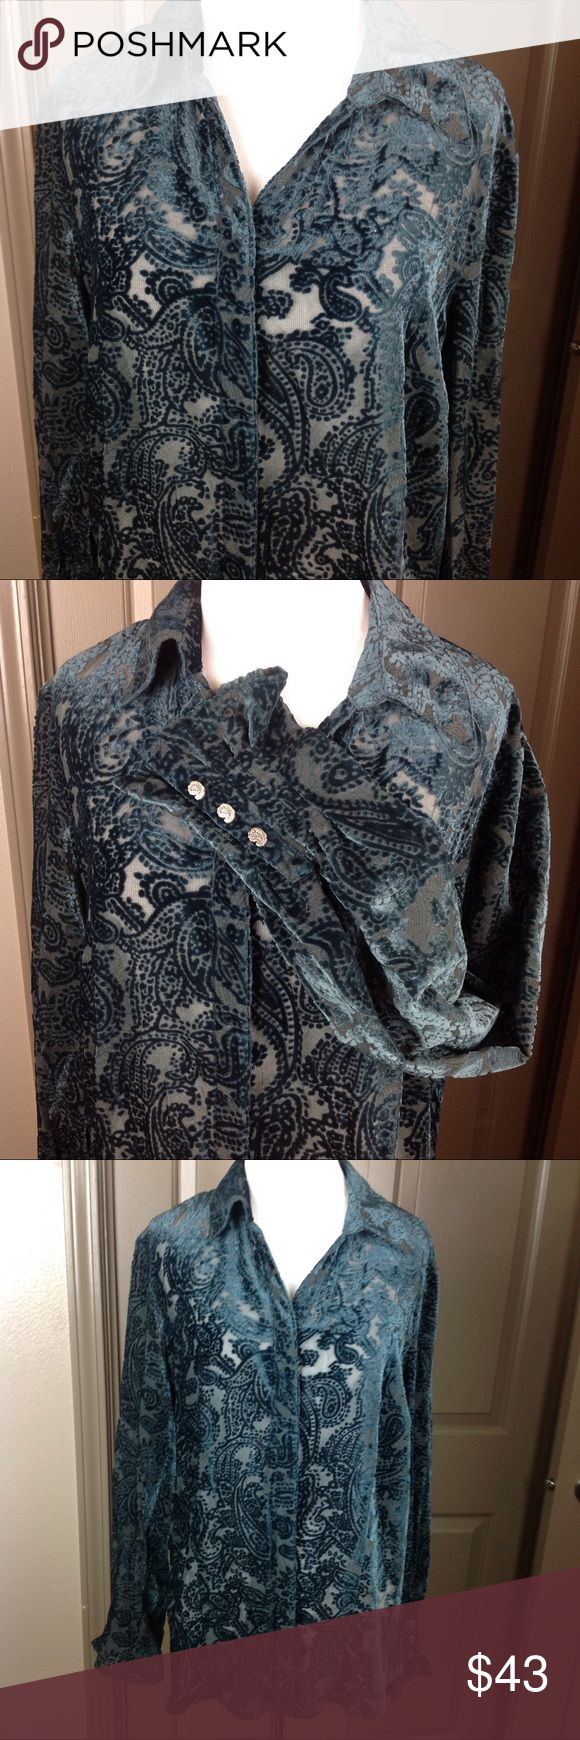 Coldwater Creek Top Lg Green Velvet Button Down Great Condition Coldwater Creek Top Large Mesh with Green Velvet Paisley Design Button Down 61/39 Rayon/Nylon Coldwater Creek Tops Blouses